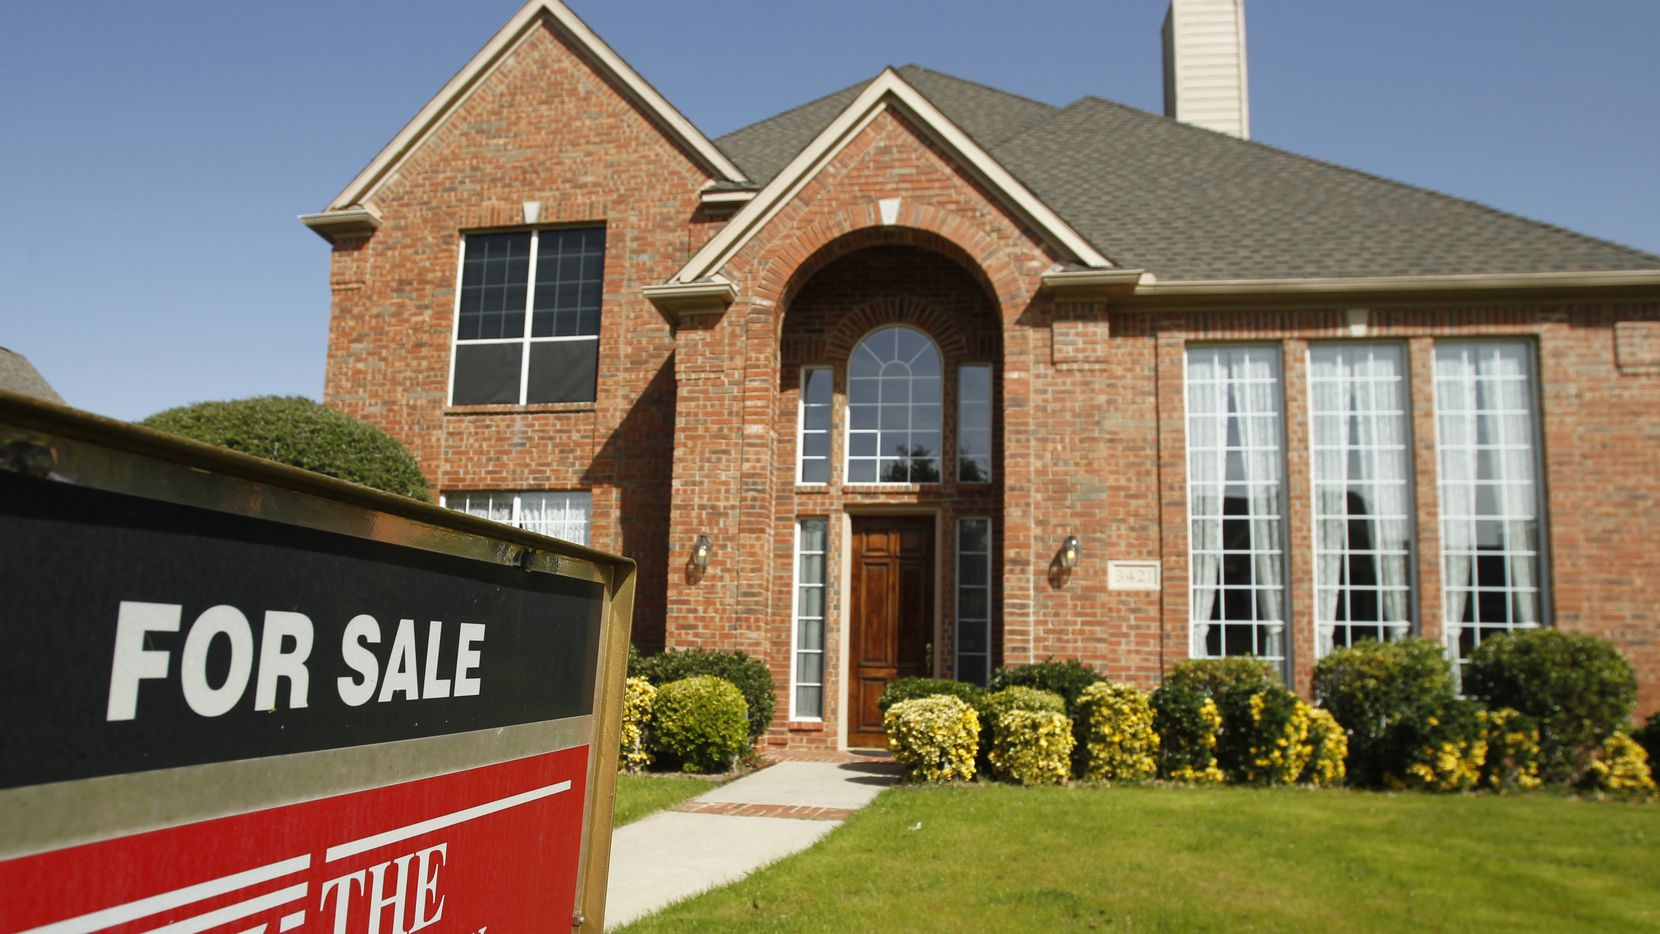 North Texas real estate agents sold more than 108,000 single-family homes in 2019.